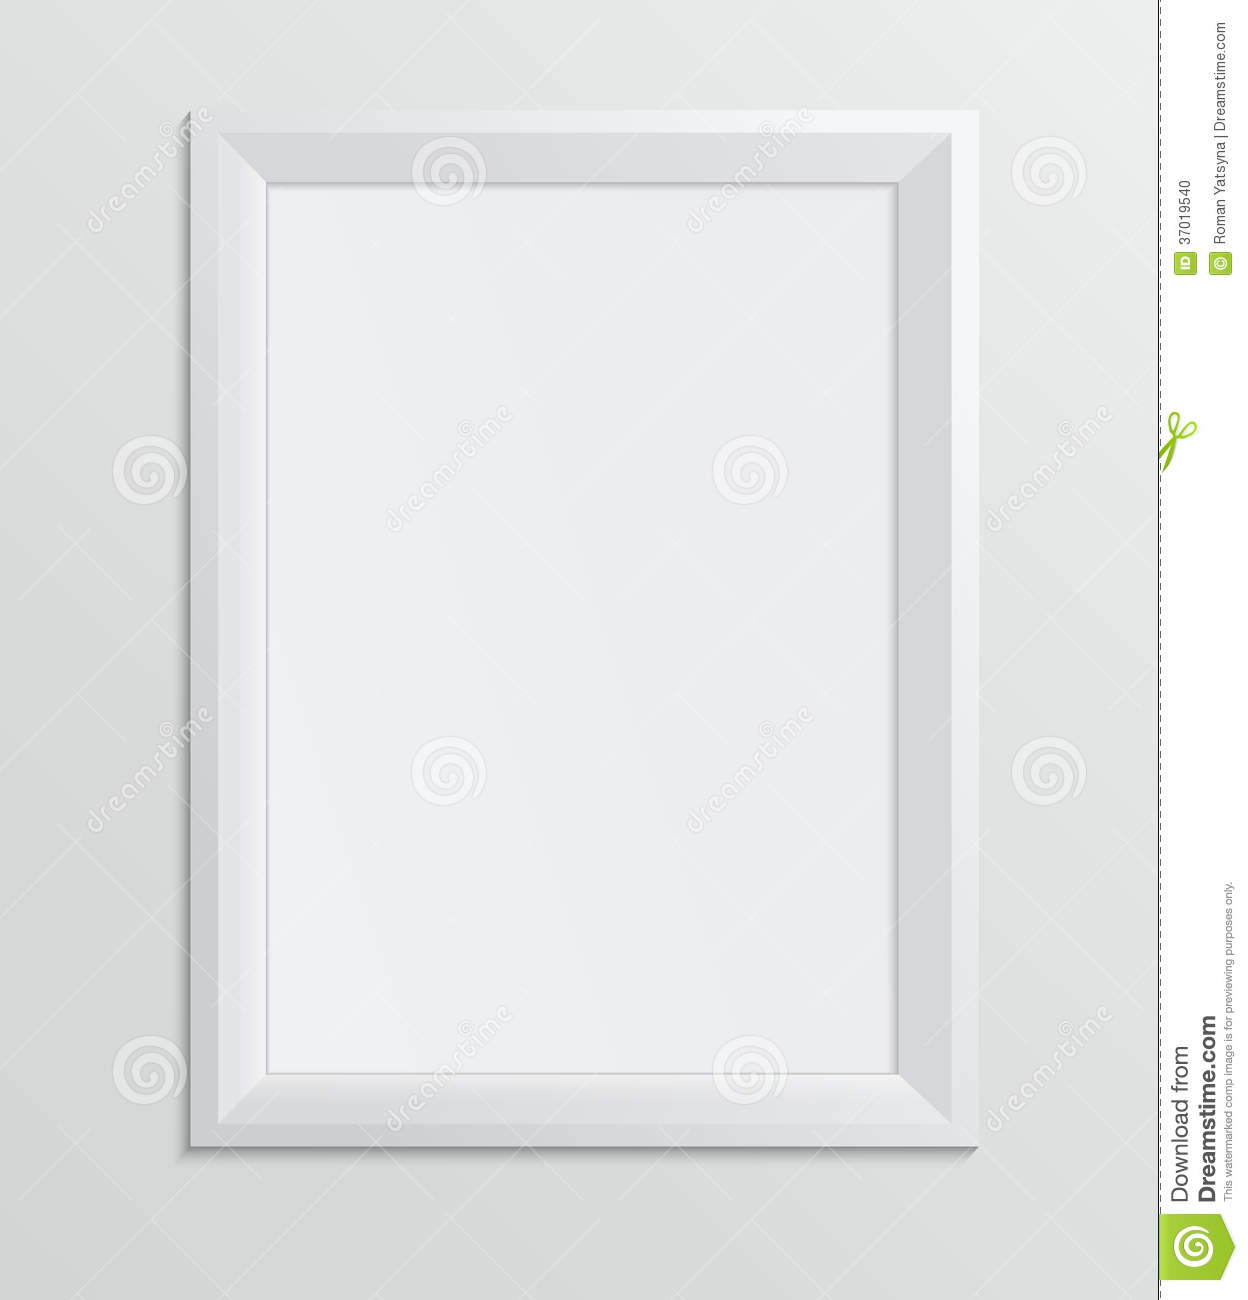 Empty White Frame On A White Background, Design A4 Stock Photo - Image ...